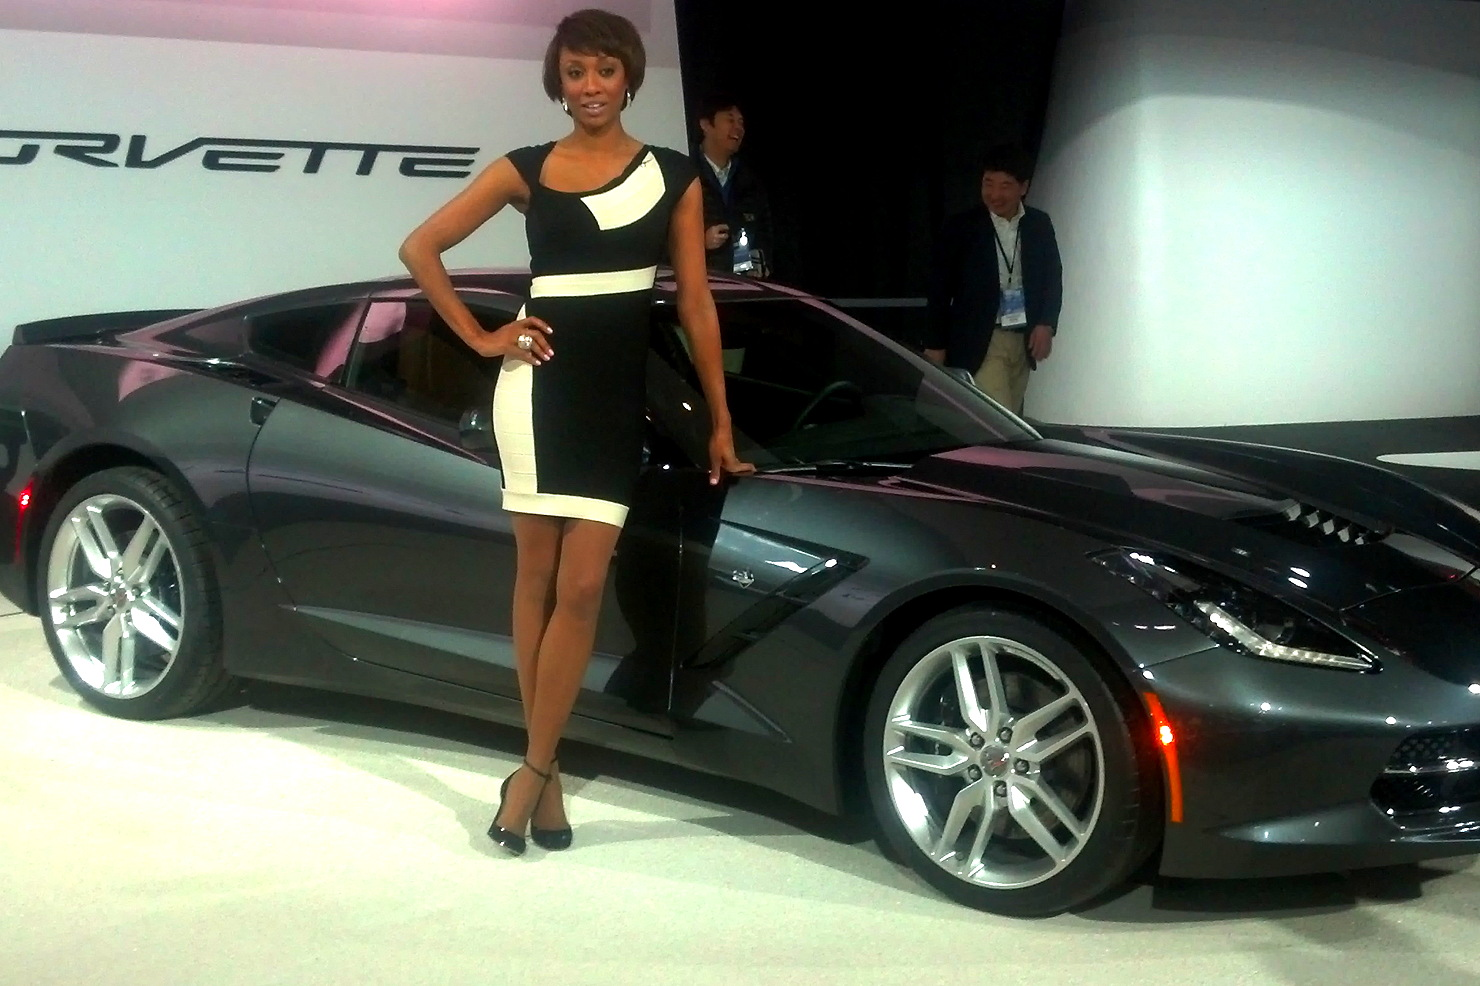 Notes From the Auto Show: Smarter, Sexier, More Fun